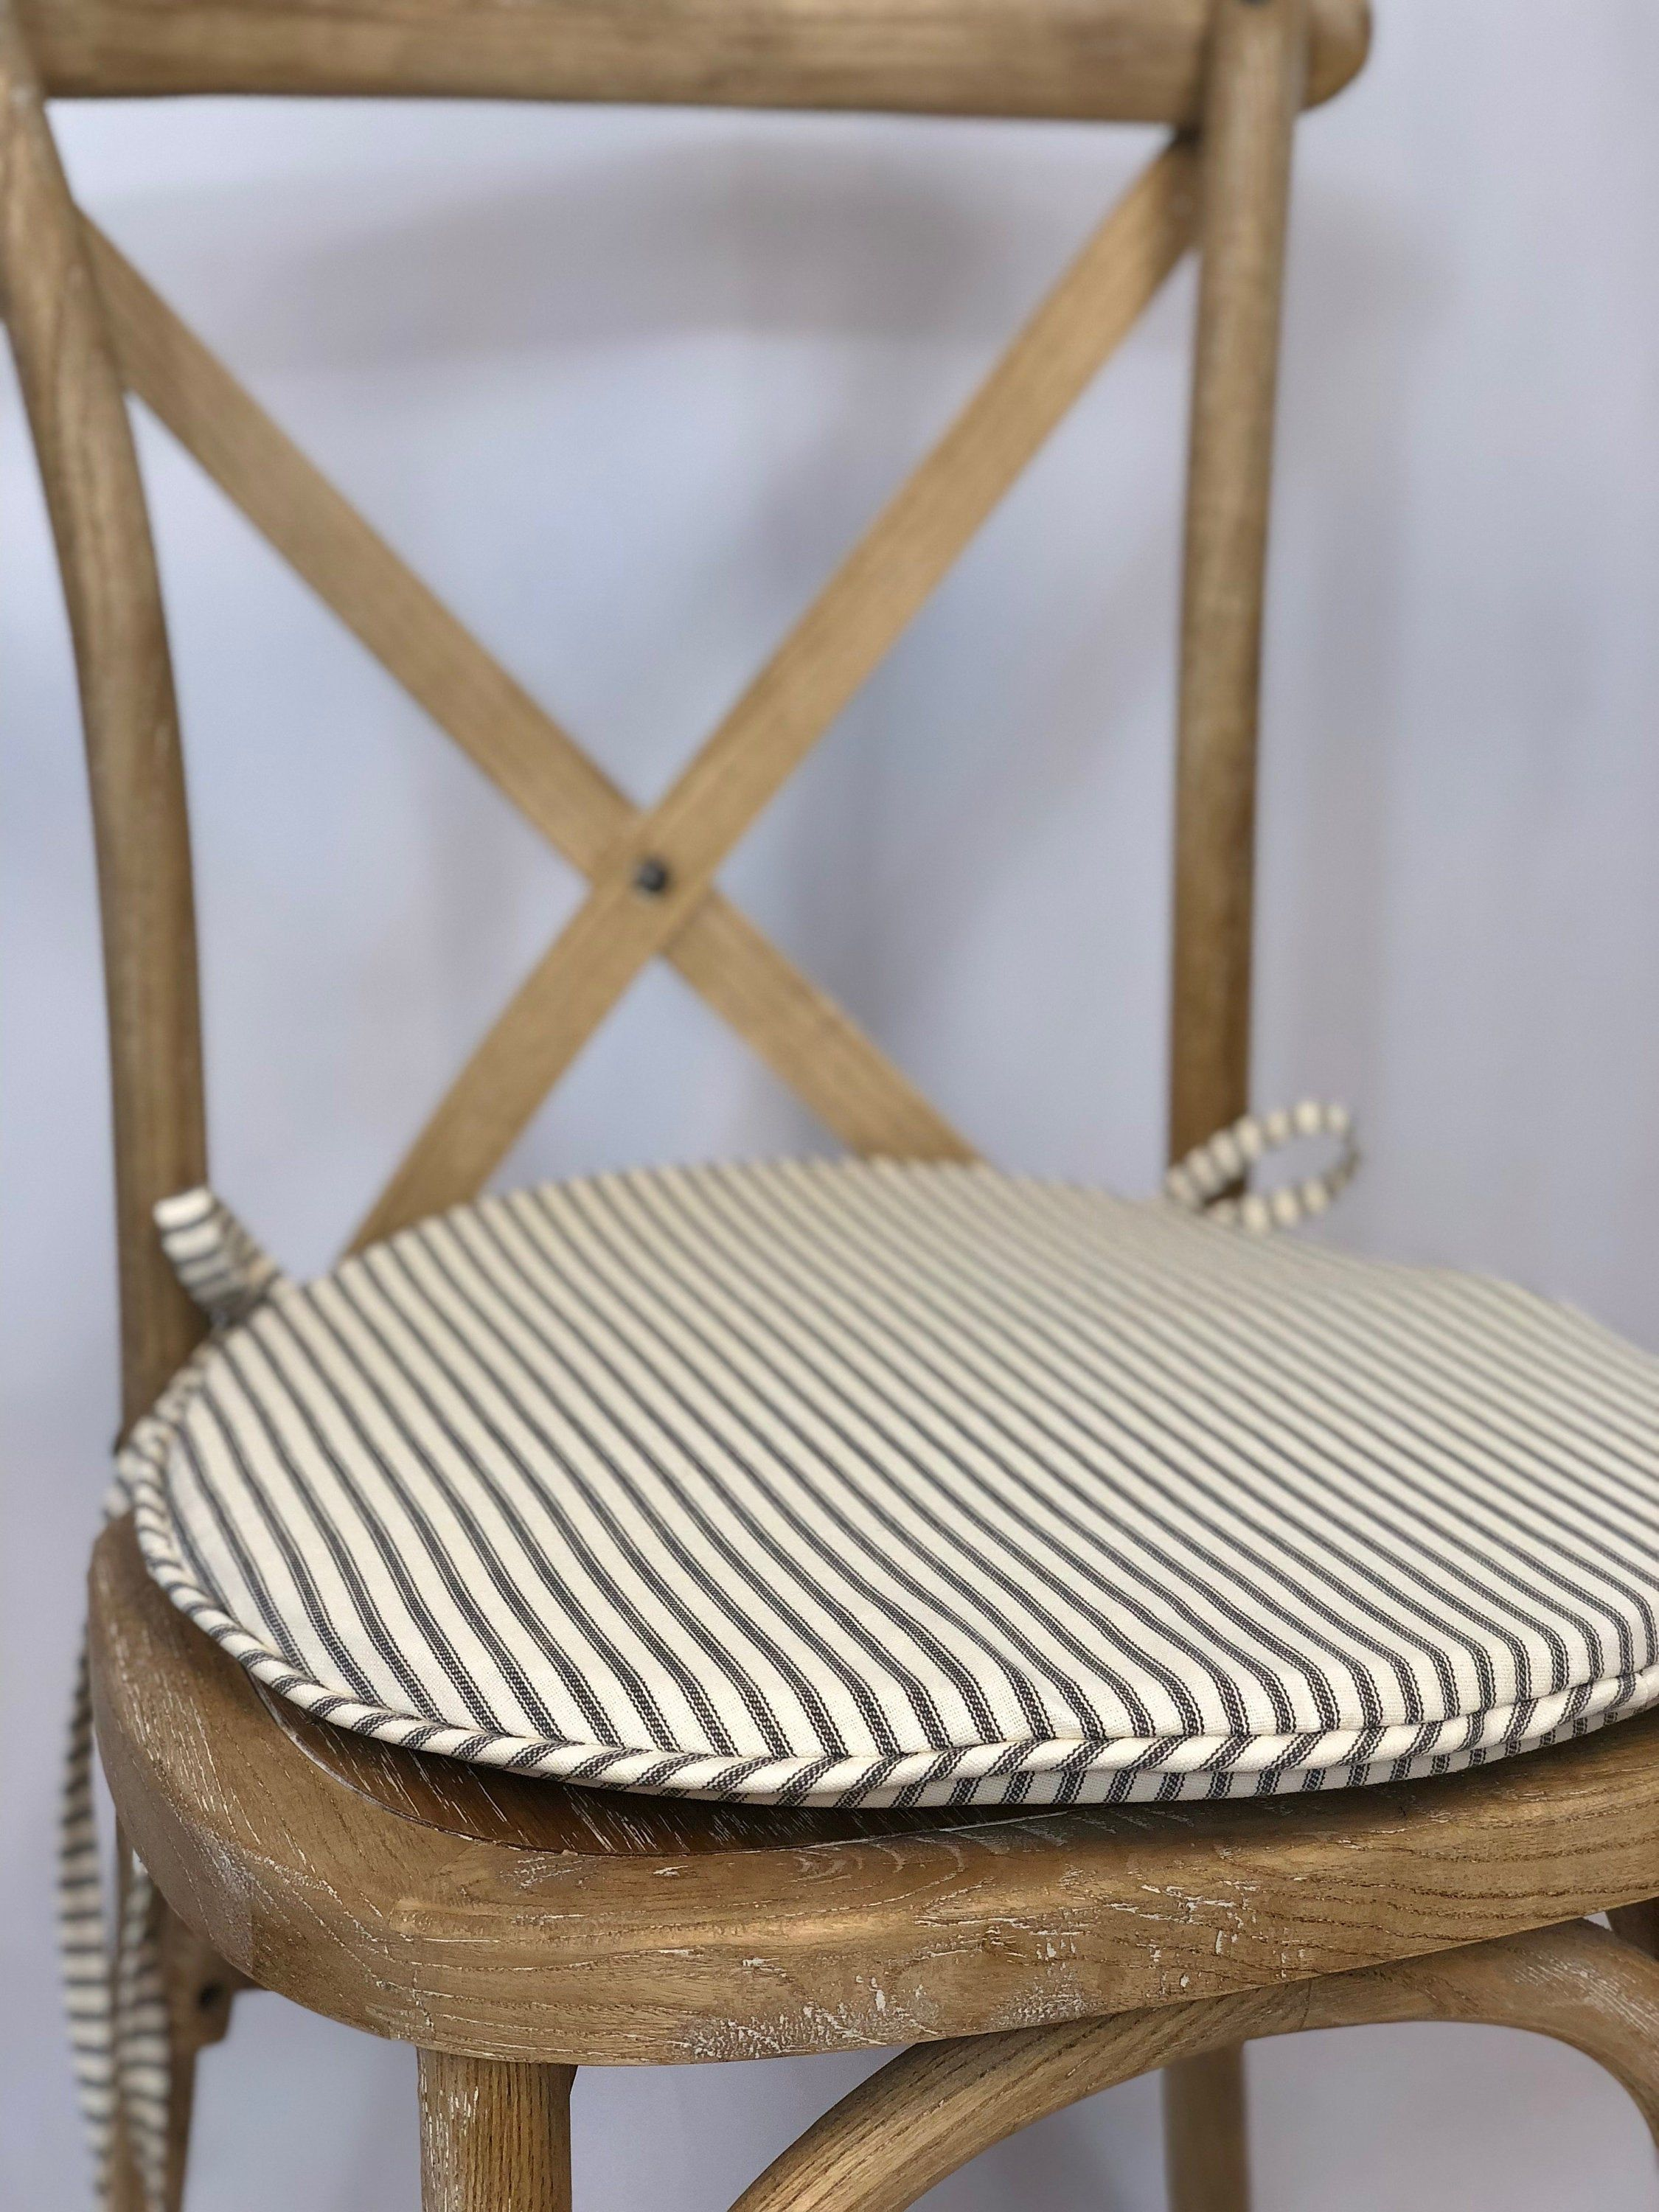 Round Bistro Cushion In French Ticking Stripe Rustic Tie Back Chair Cushion Shabby Chic Cushion Solid Canvas Available For Chair Pad In 2020 Shabby Chic Cushions Chair Cushions Kitchen Chair Pads